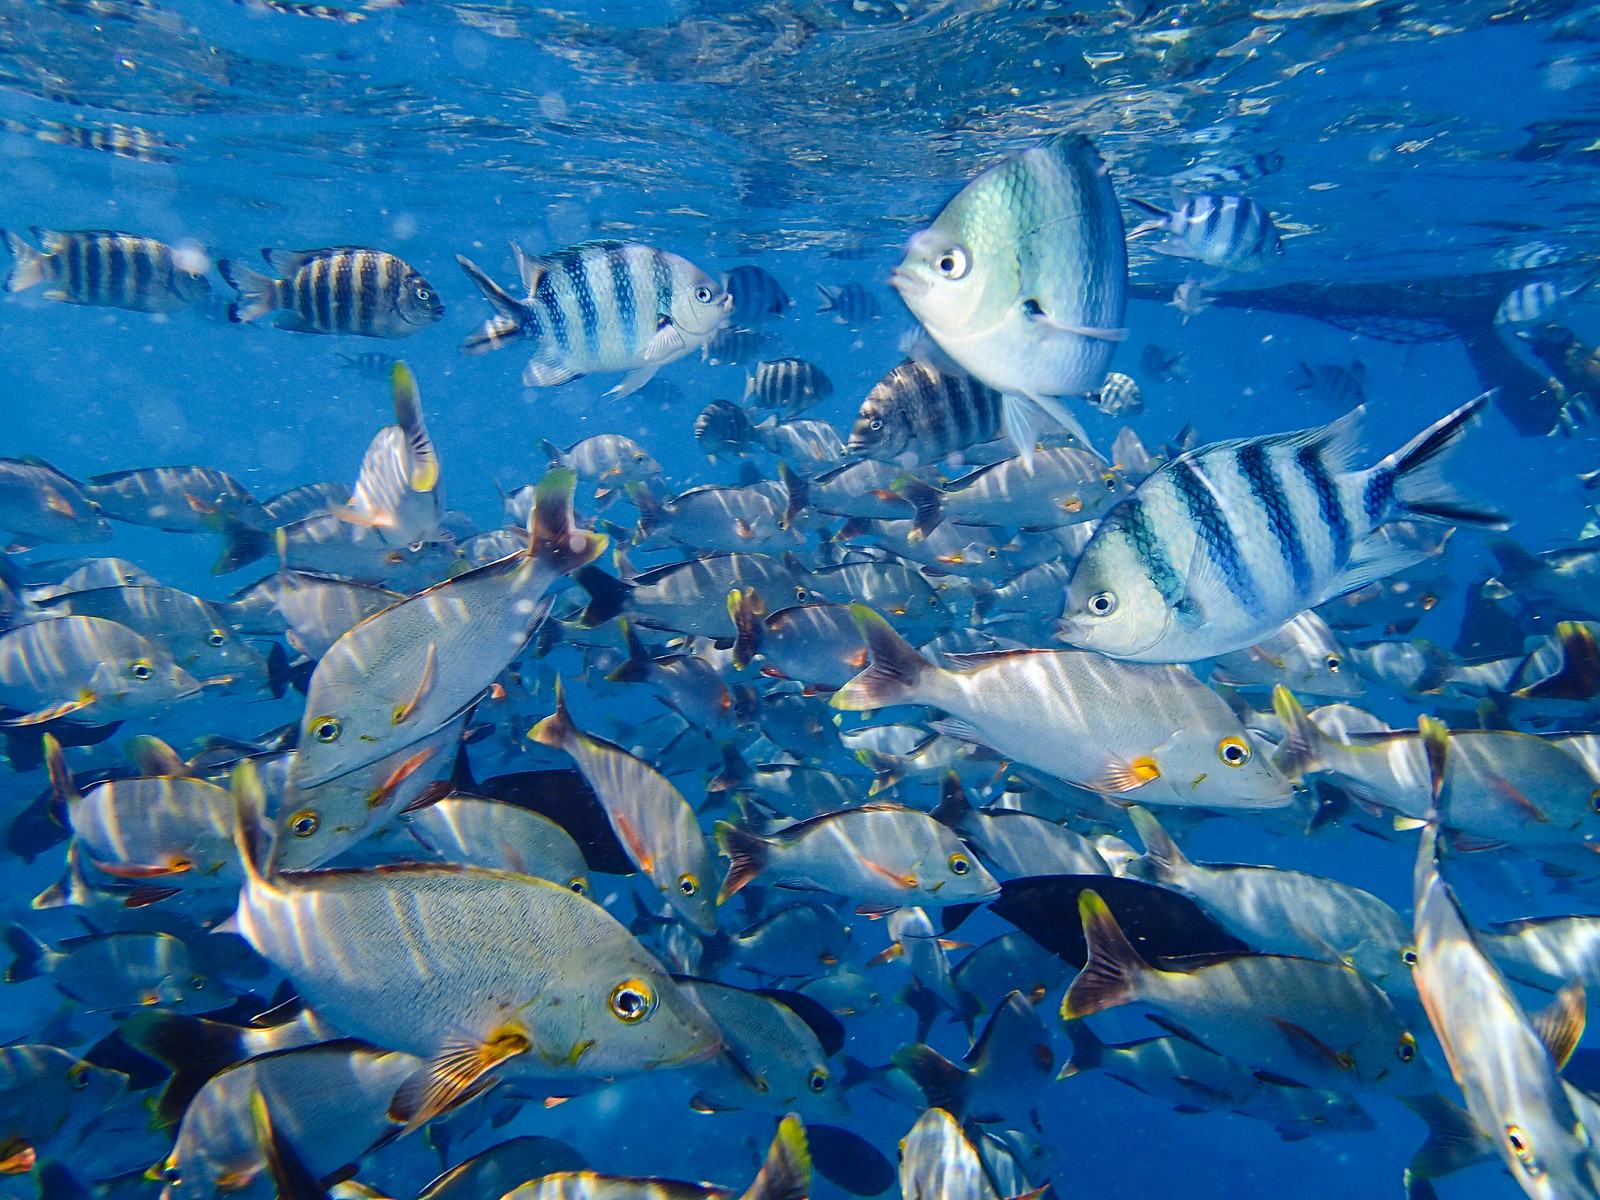 Blue and white school of fish swimming in the South Pacific Ocean.